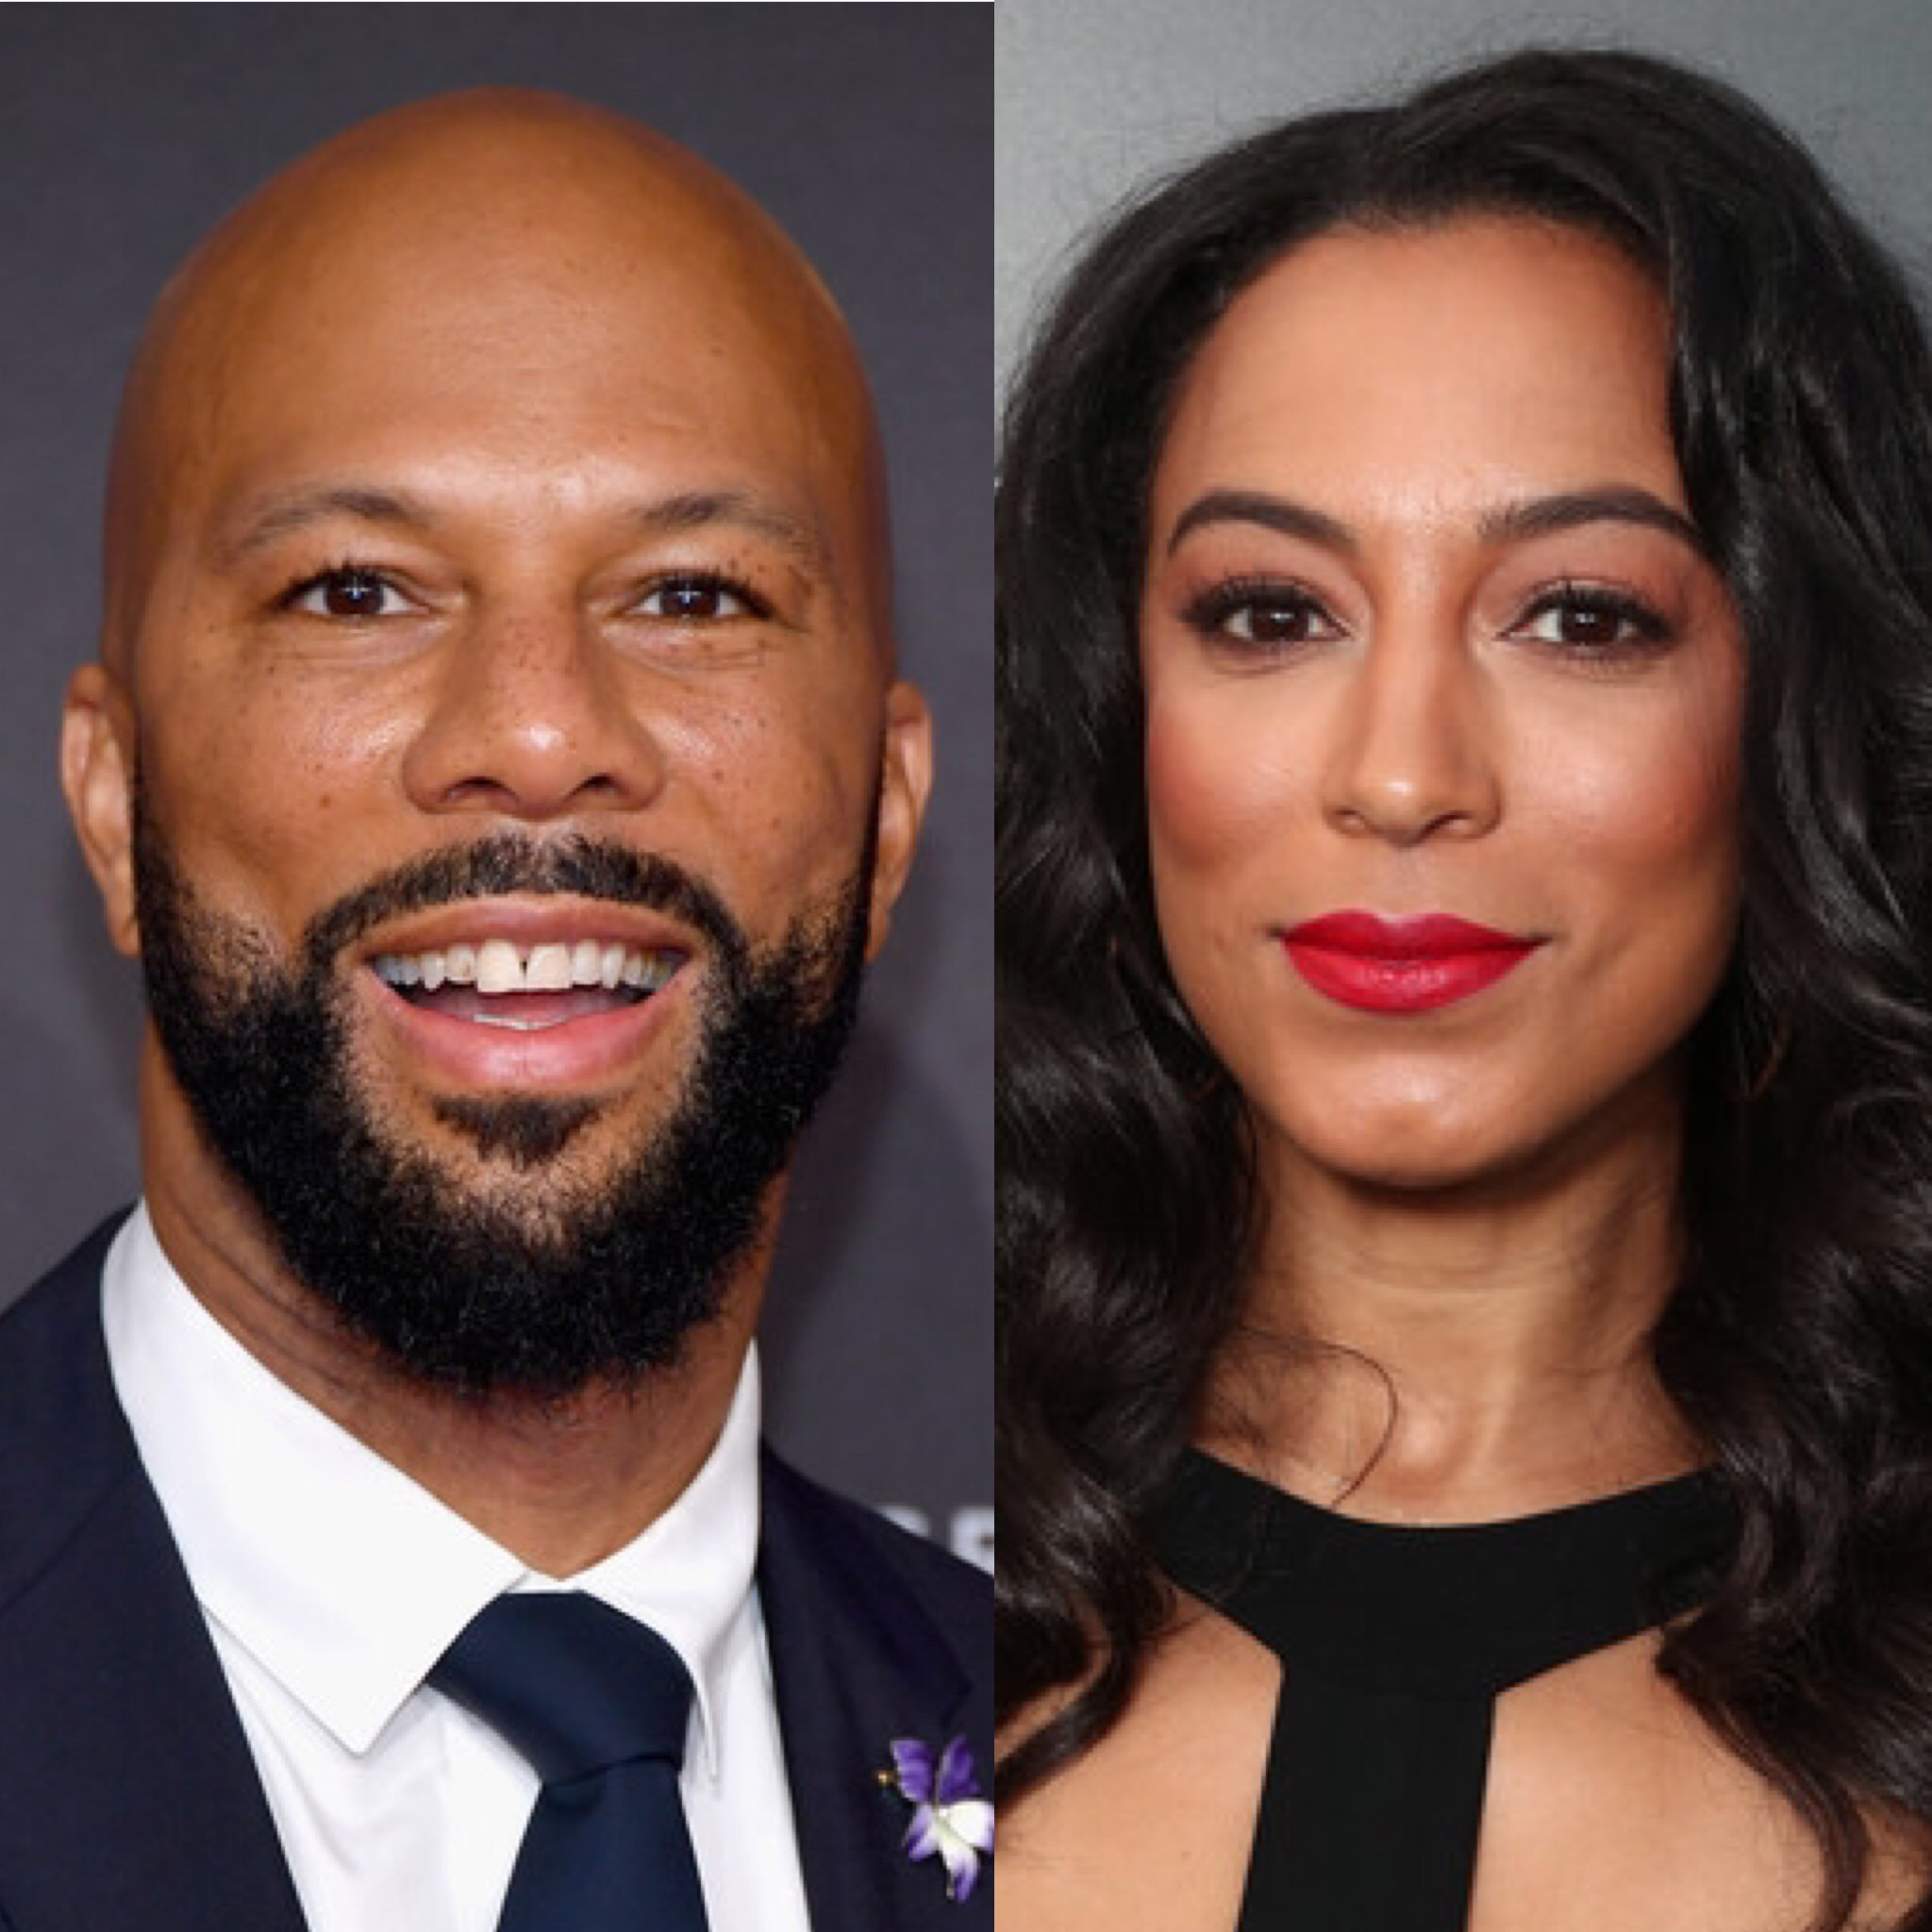 Common and Angela Rye (Getty Images)